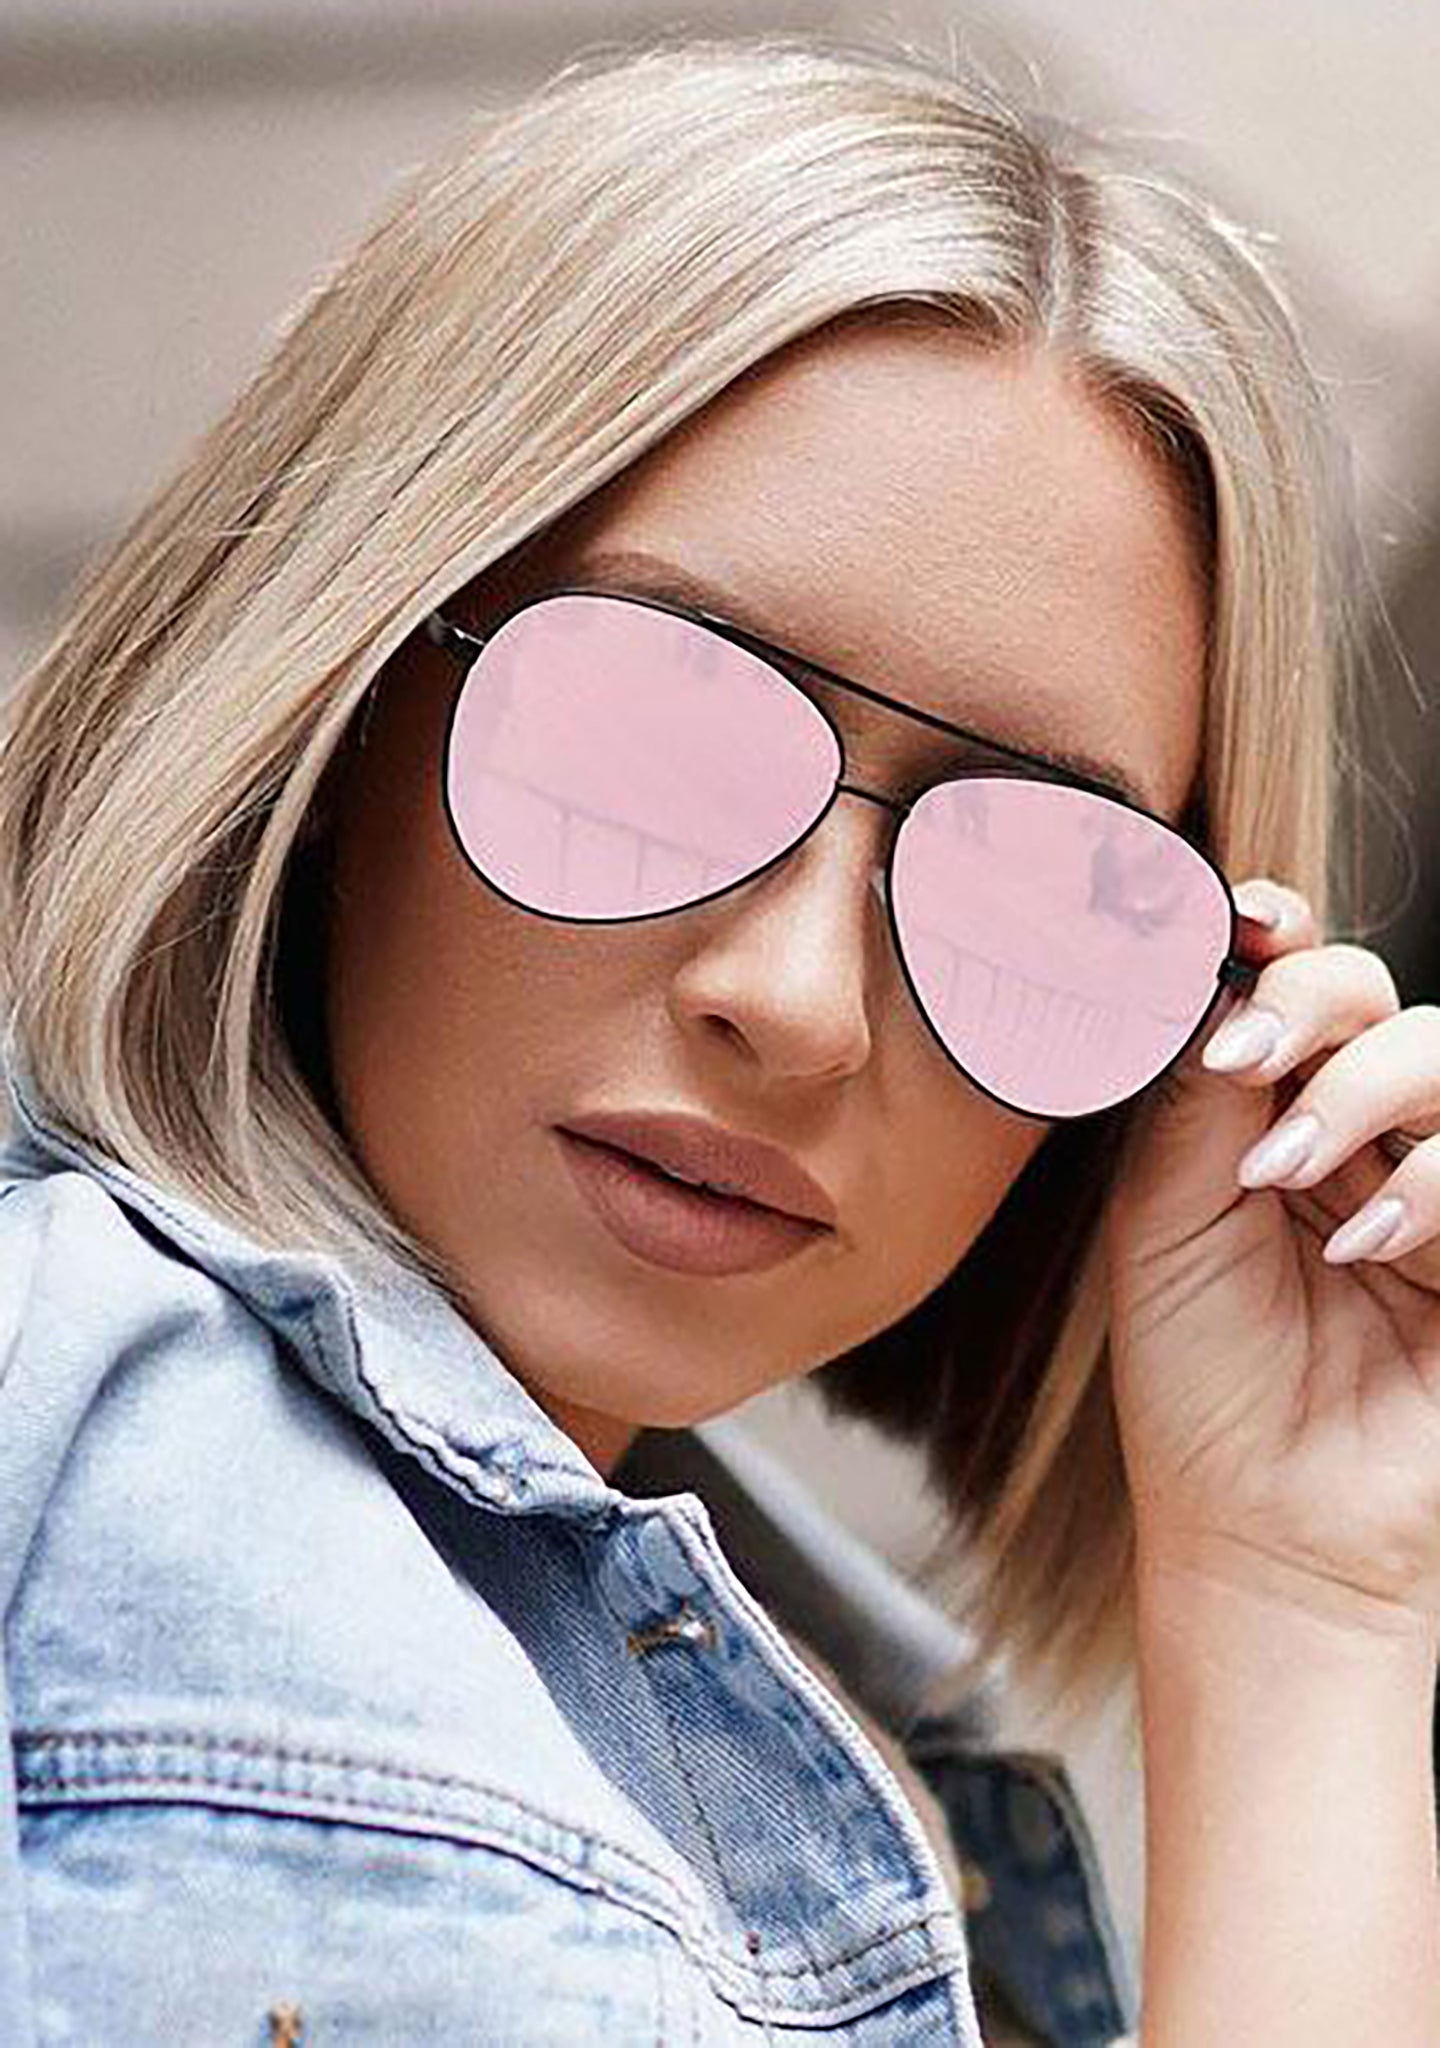 X Megan Hannigan Megan Sunglasses in Black Rose Gold